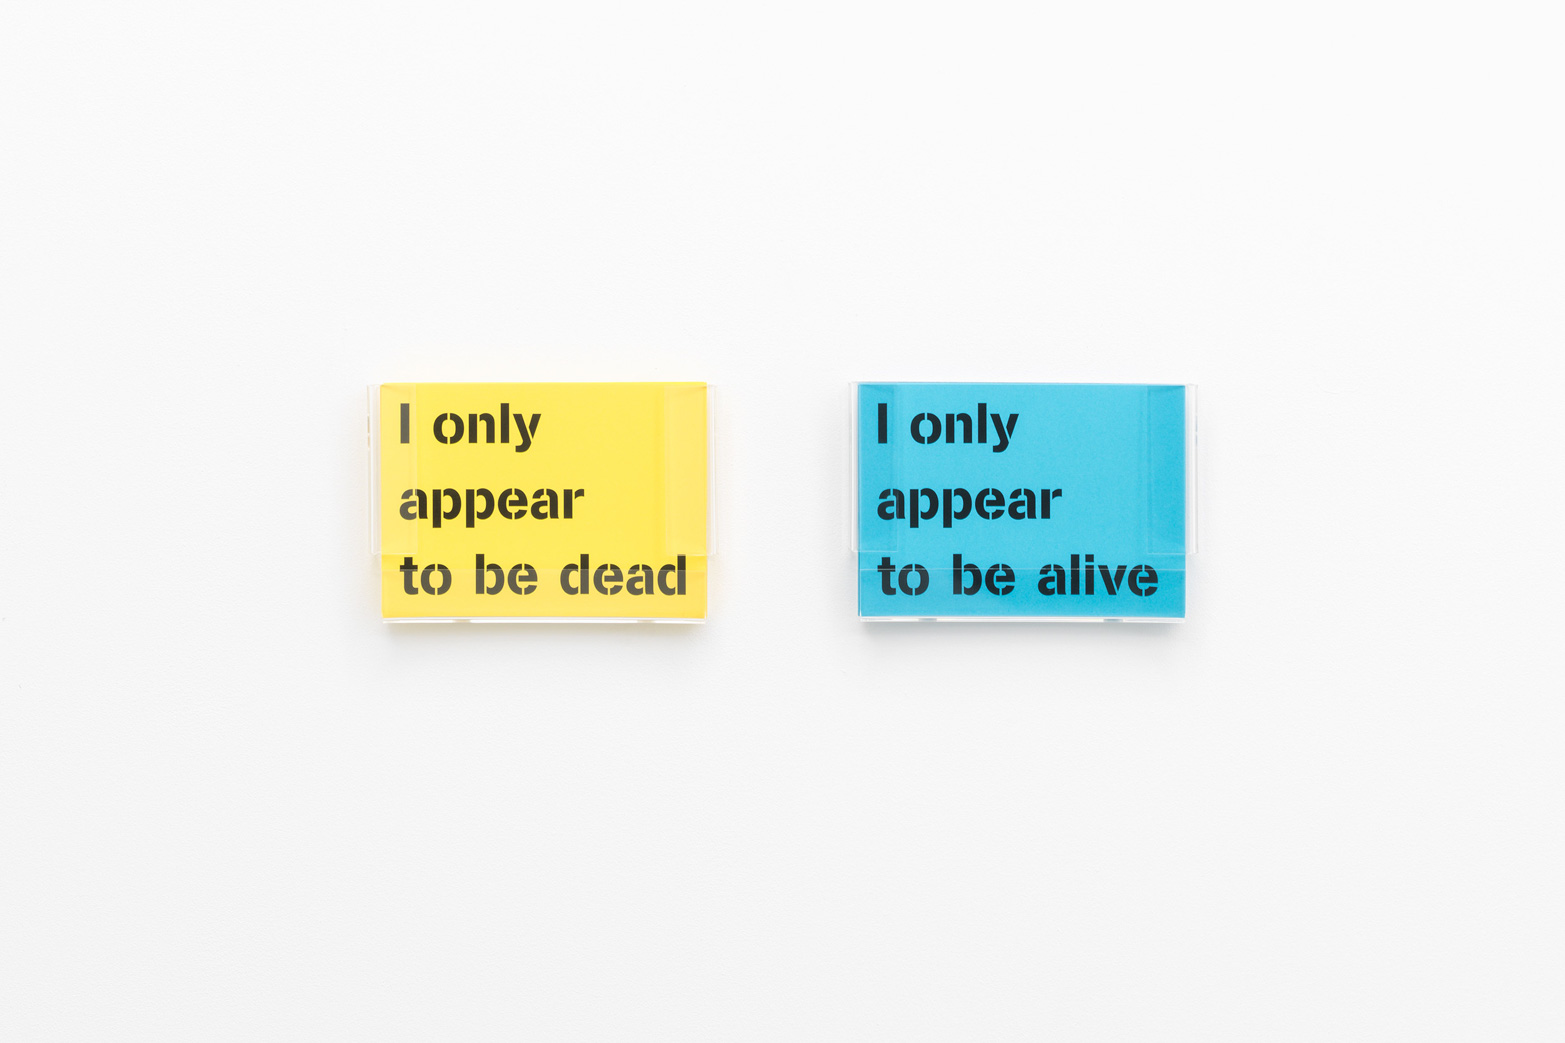 Ian Whittlesea,  I only appear to be alive / I only appear to be dead, 2009. Tenderpixel.